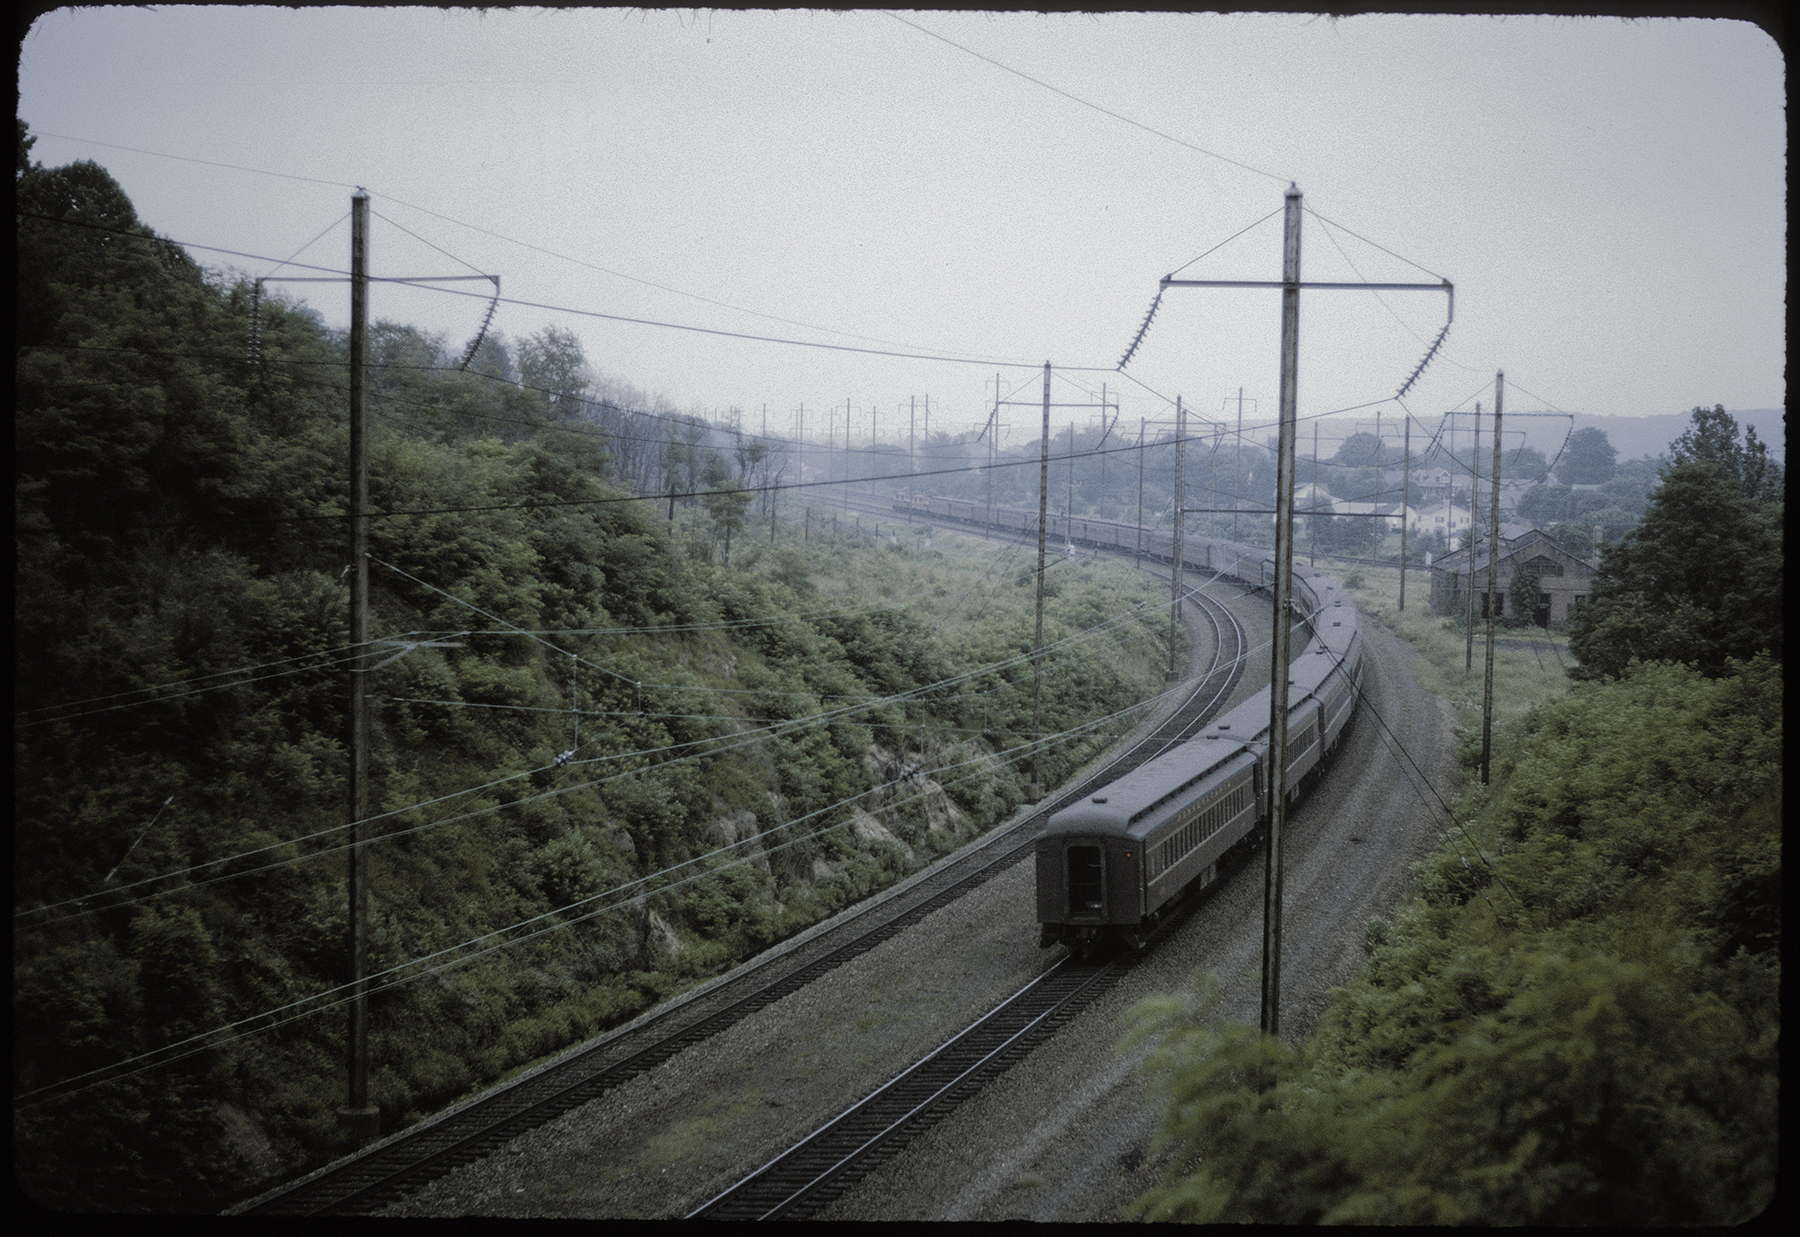 This 1962 view of an eastbound passenger train winding through the curve at North Bend shows evidence of the PRR's rationing of excess capacity with the removal of two of the four main tracks. While the era of steam has long since passed, a coal-fired boiler house remains, off to the right, once part of the extensive Atgen track pan system that allowed steam trains to take water at speed on both the Main Line and Atglen & Susquehanna Branch (visible behind the structure). James P. Shuman photograph, Railroad Museum of Pennsylvania, PMHC.